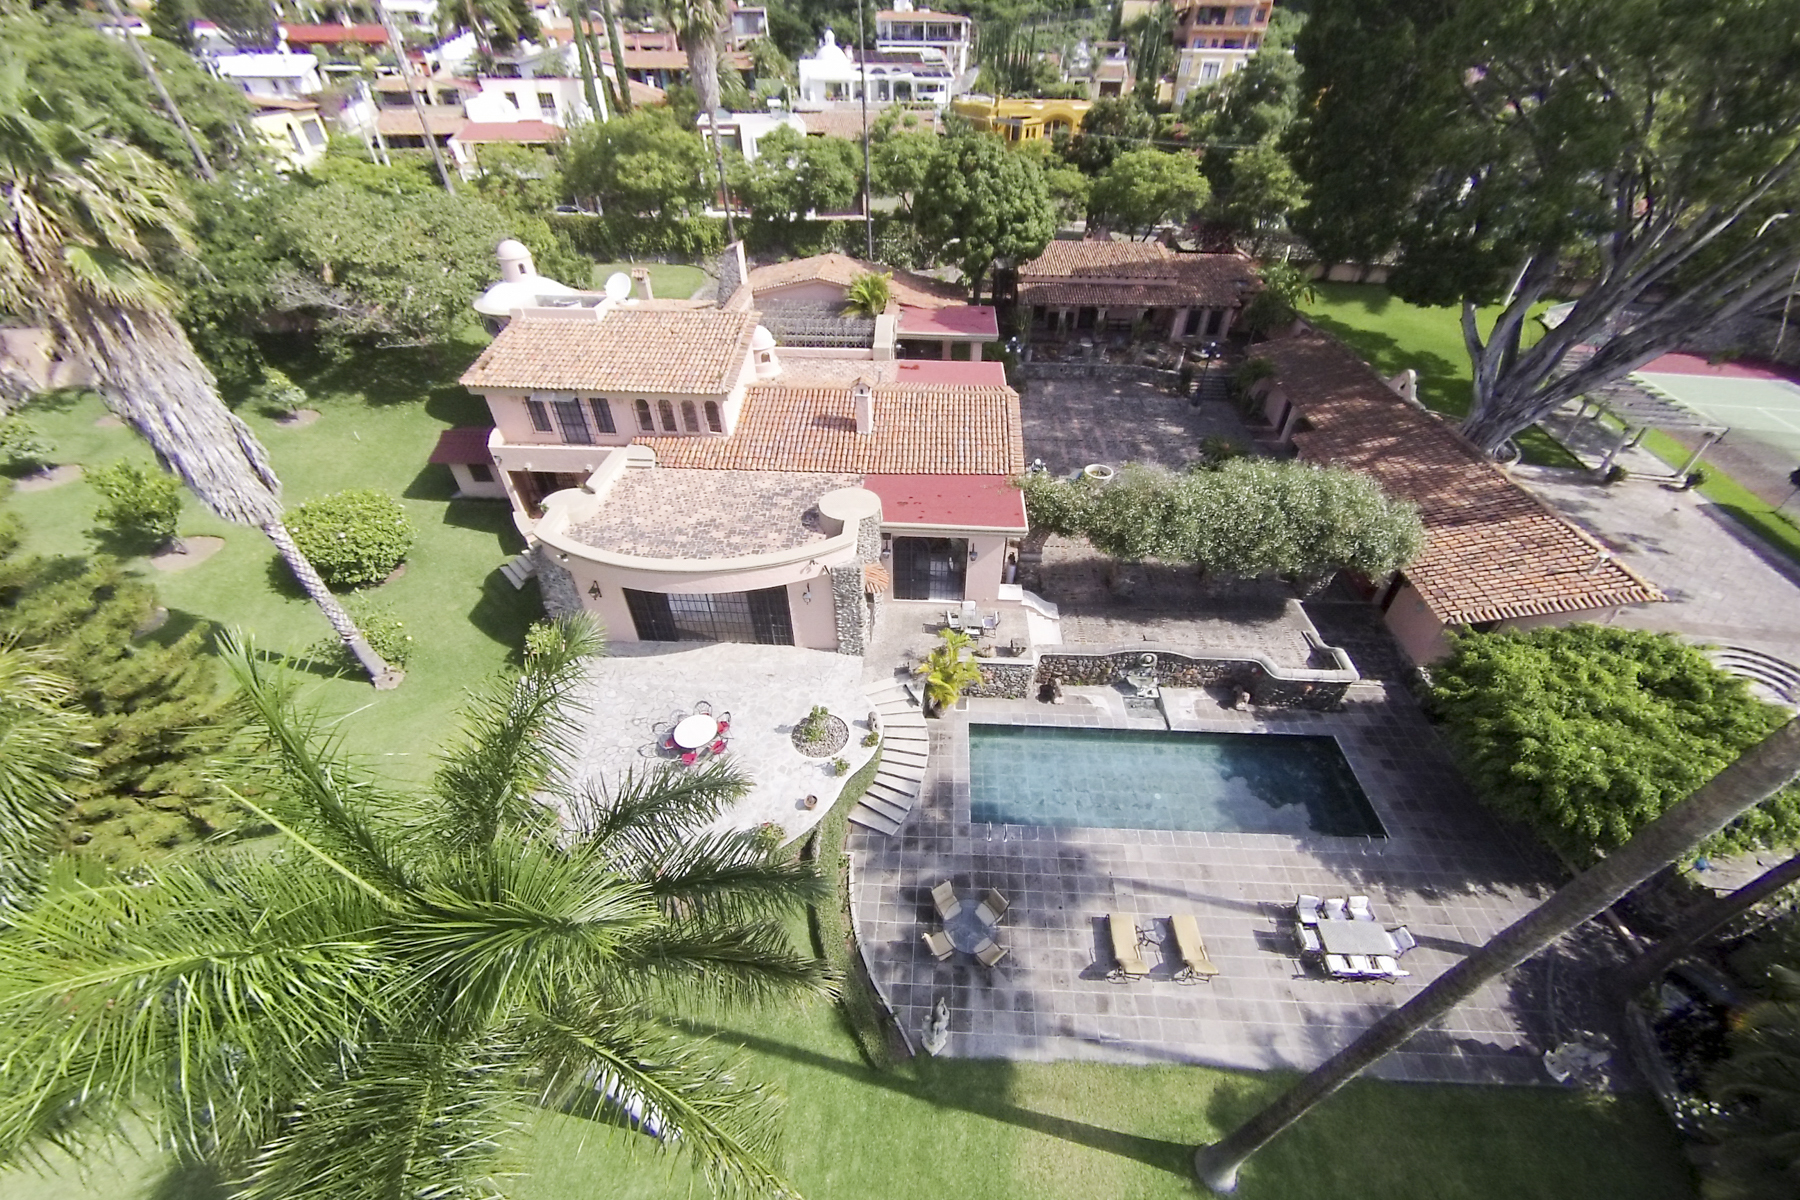 Property For Sale at Hacienda La Mina, luxury property for sale in Ajijic